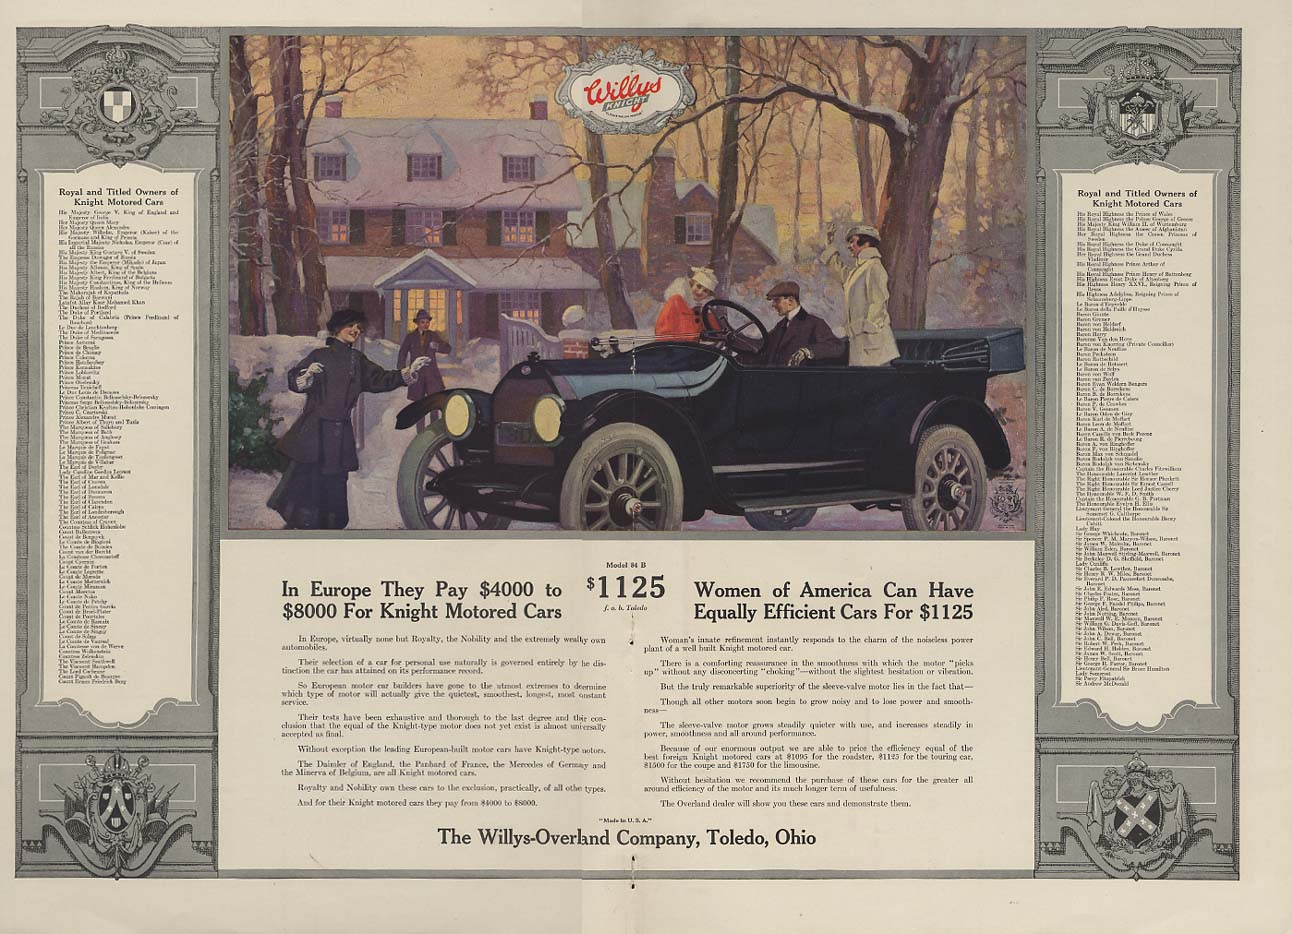 Image for Women of America can have the Willys-Knight ad / Jessie Willcox Smith page 1916